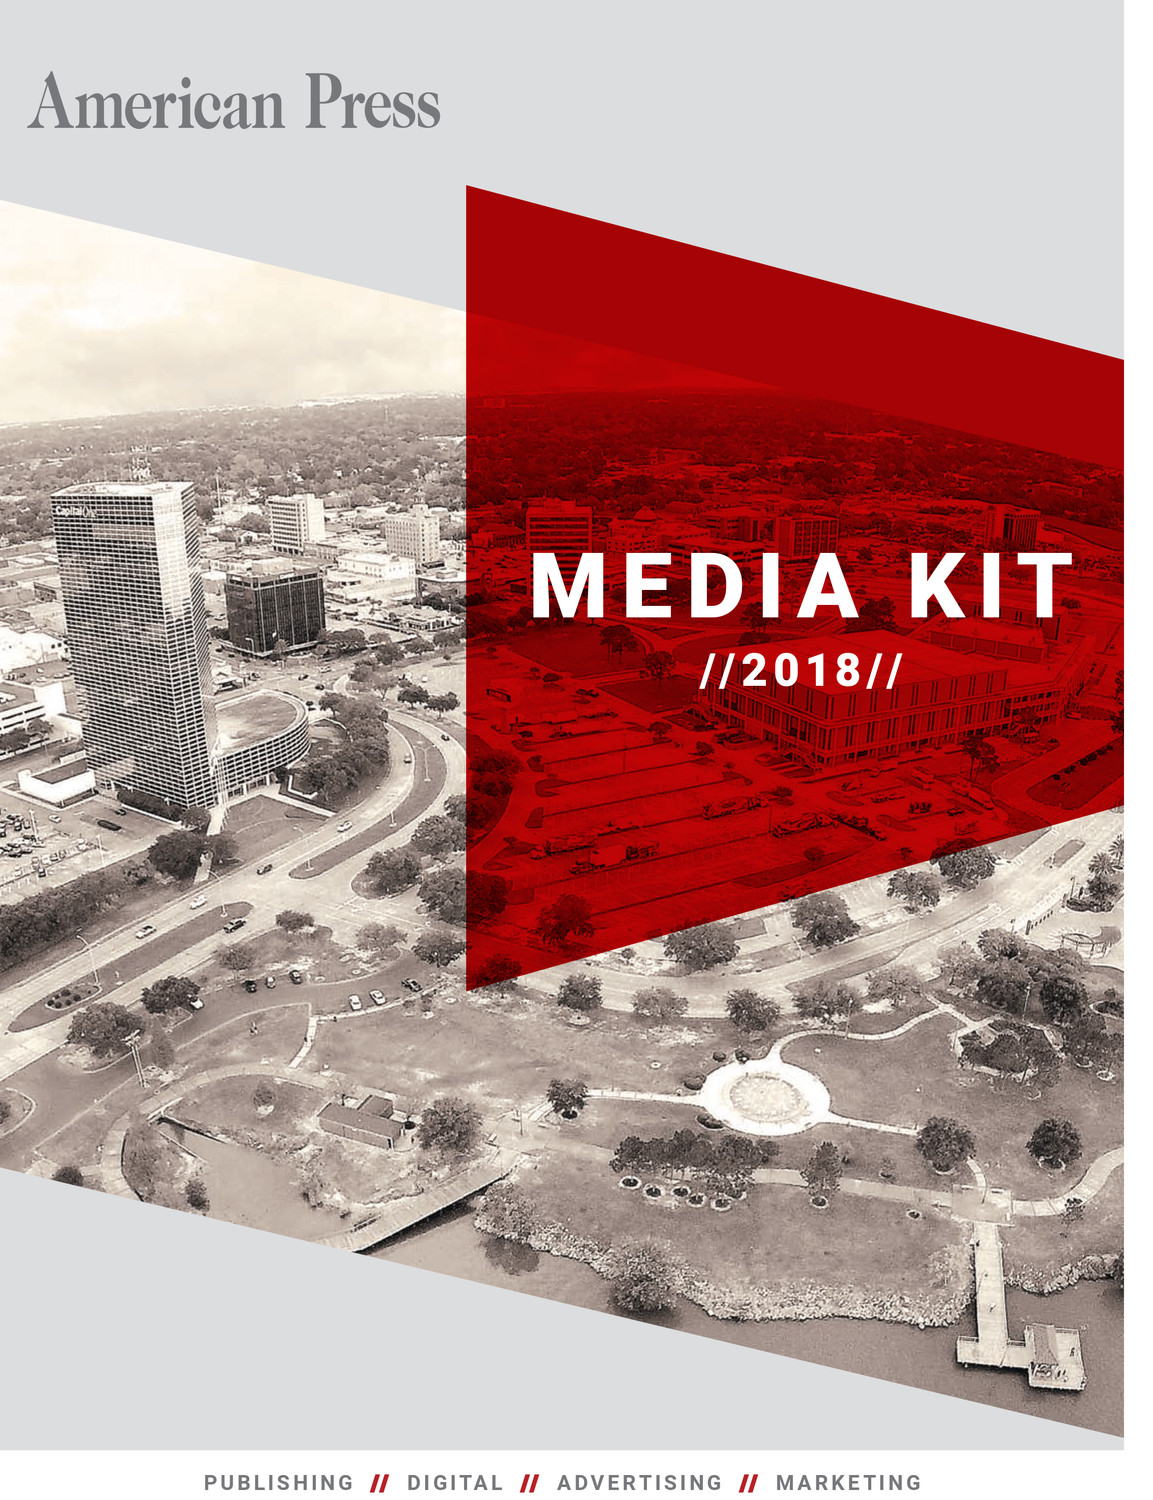 View the 2018 Media Kit